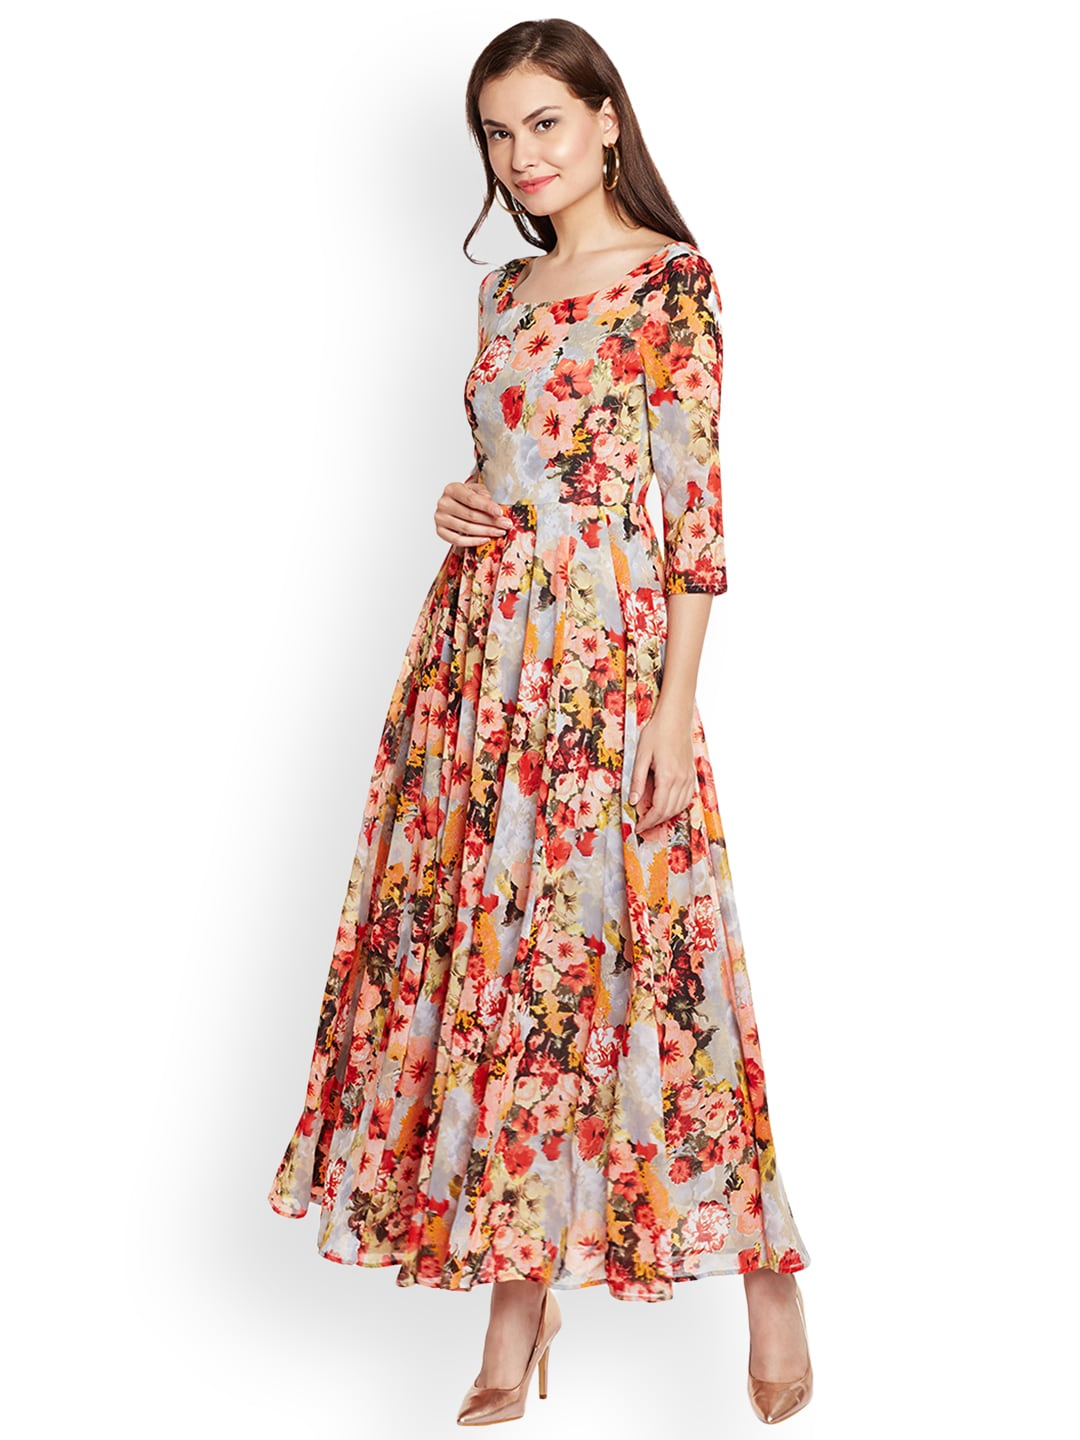 950be5da70a4 Floral Dresses - Buy Floral Print Dress Online in India